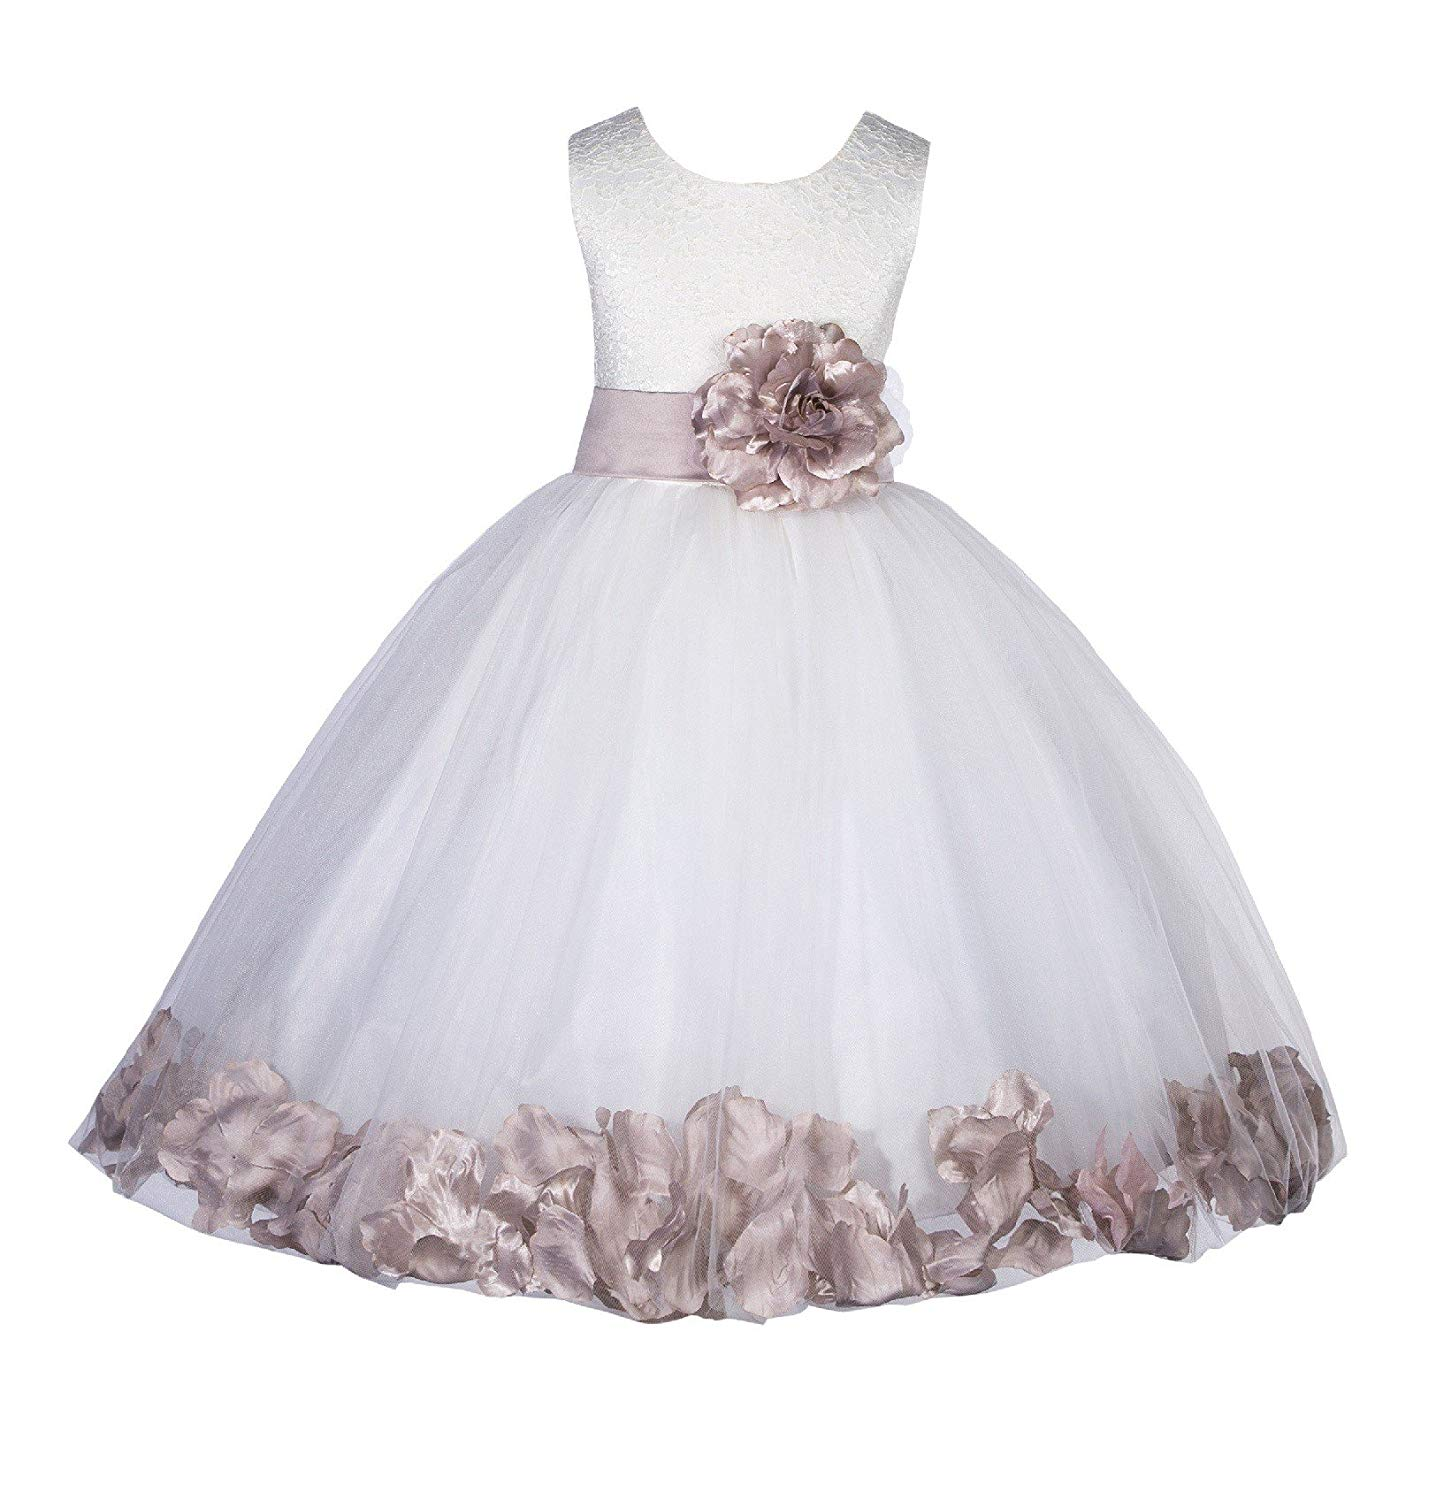 8a4c16872 Cheap Lace Ivory Flower Girl Dress